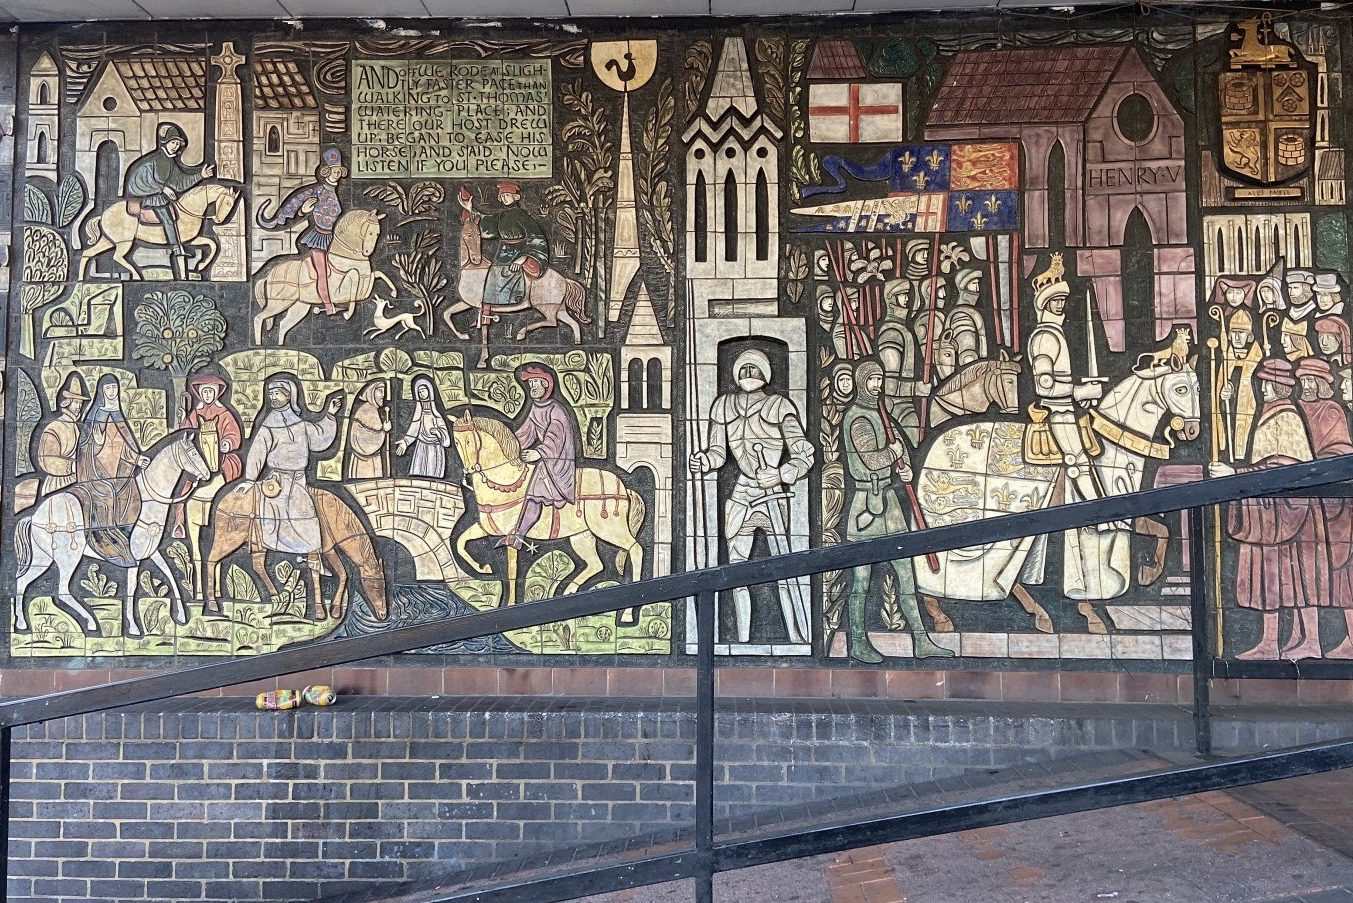 Best Historic London Murals - Old Kent Road